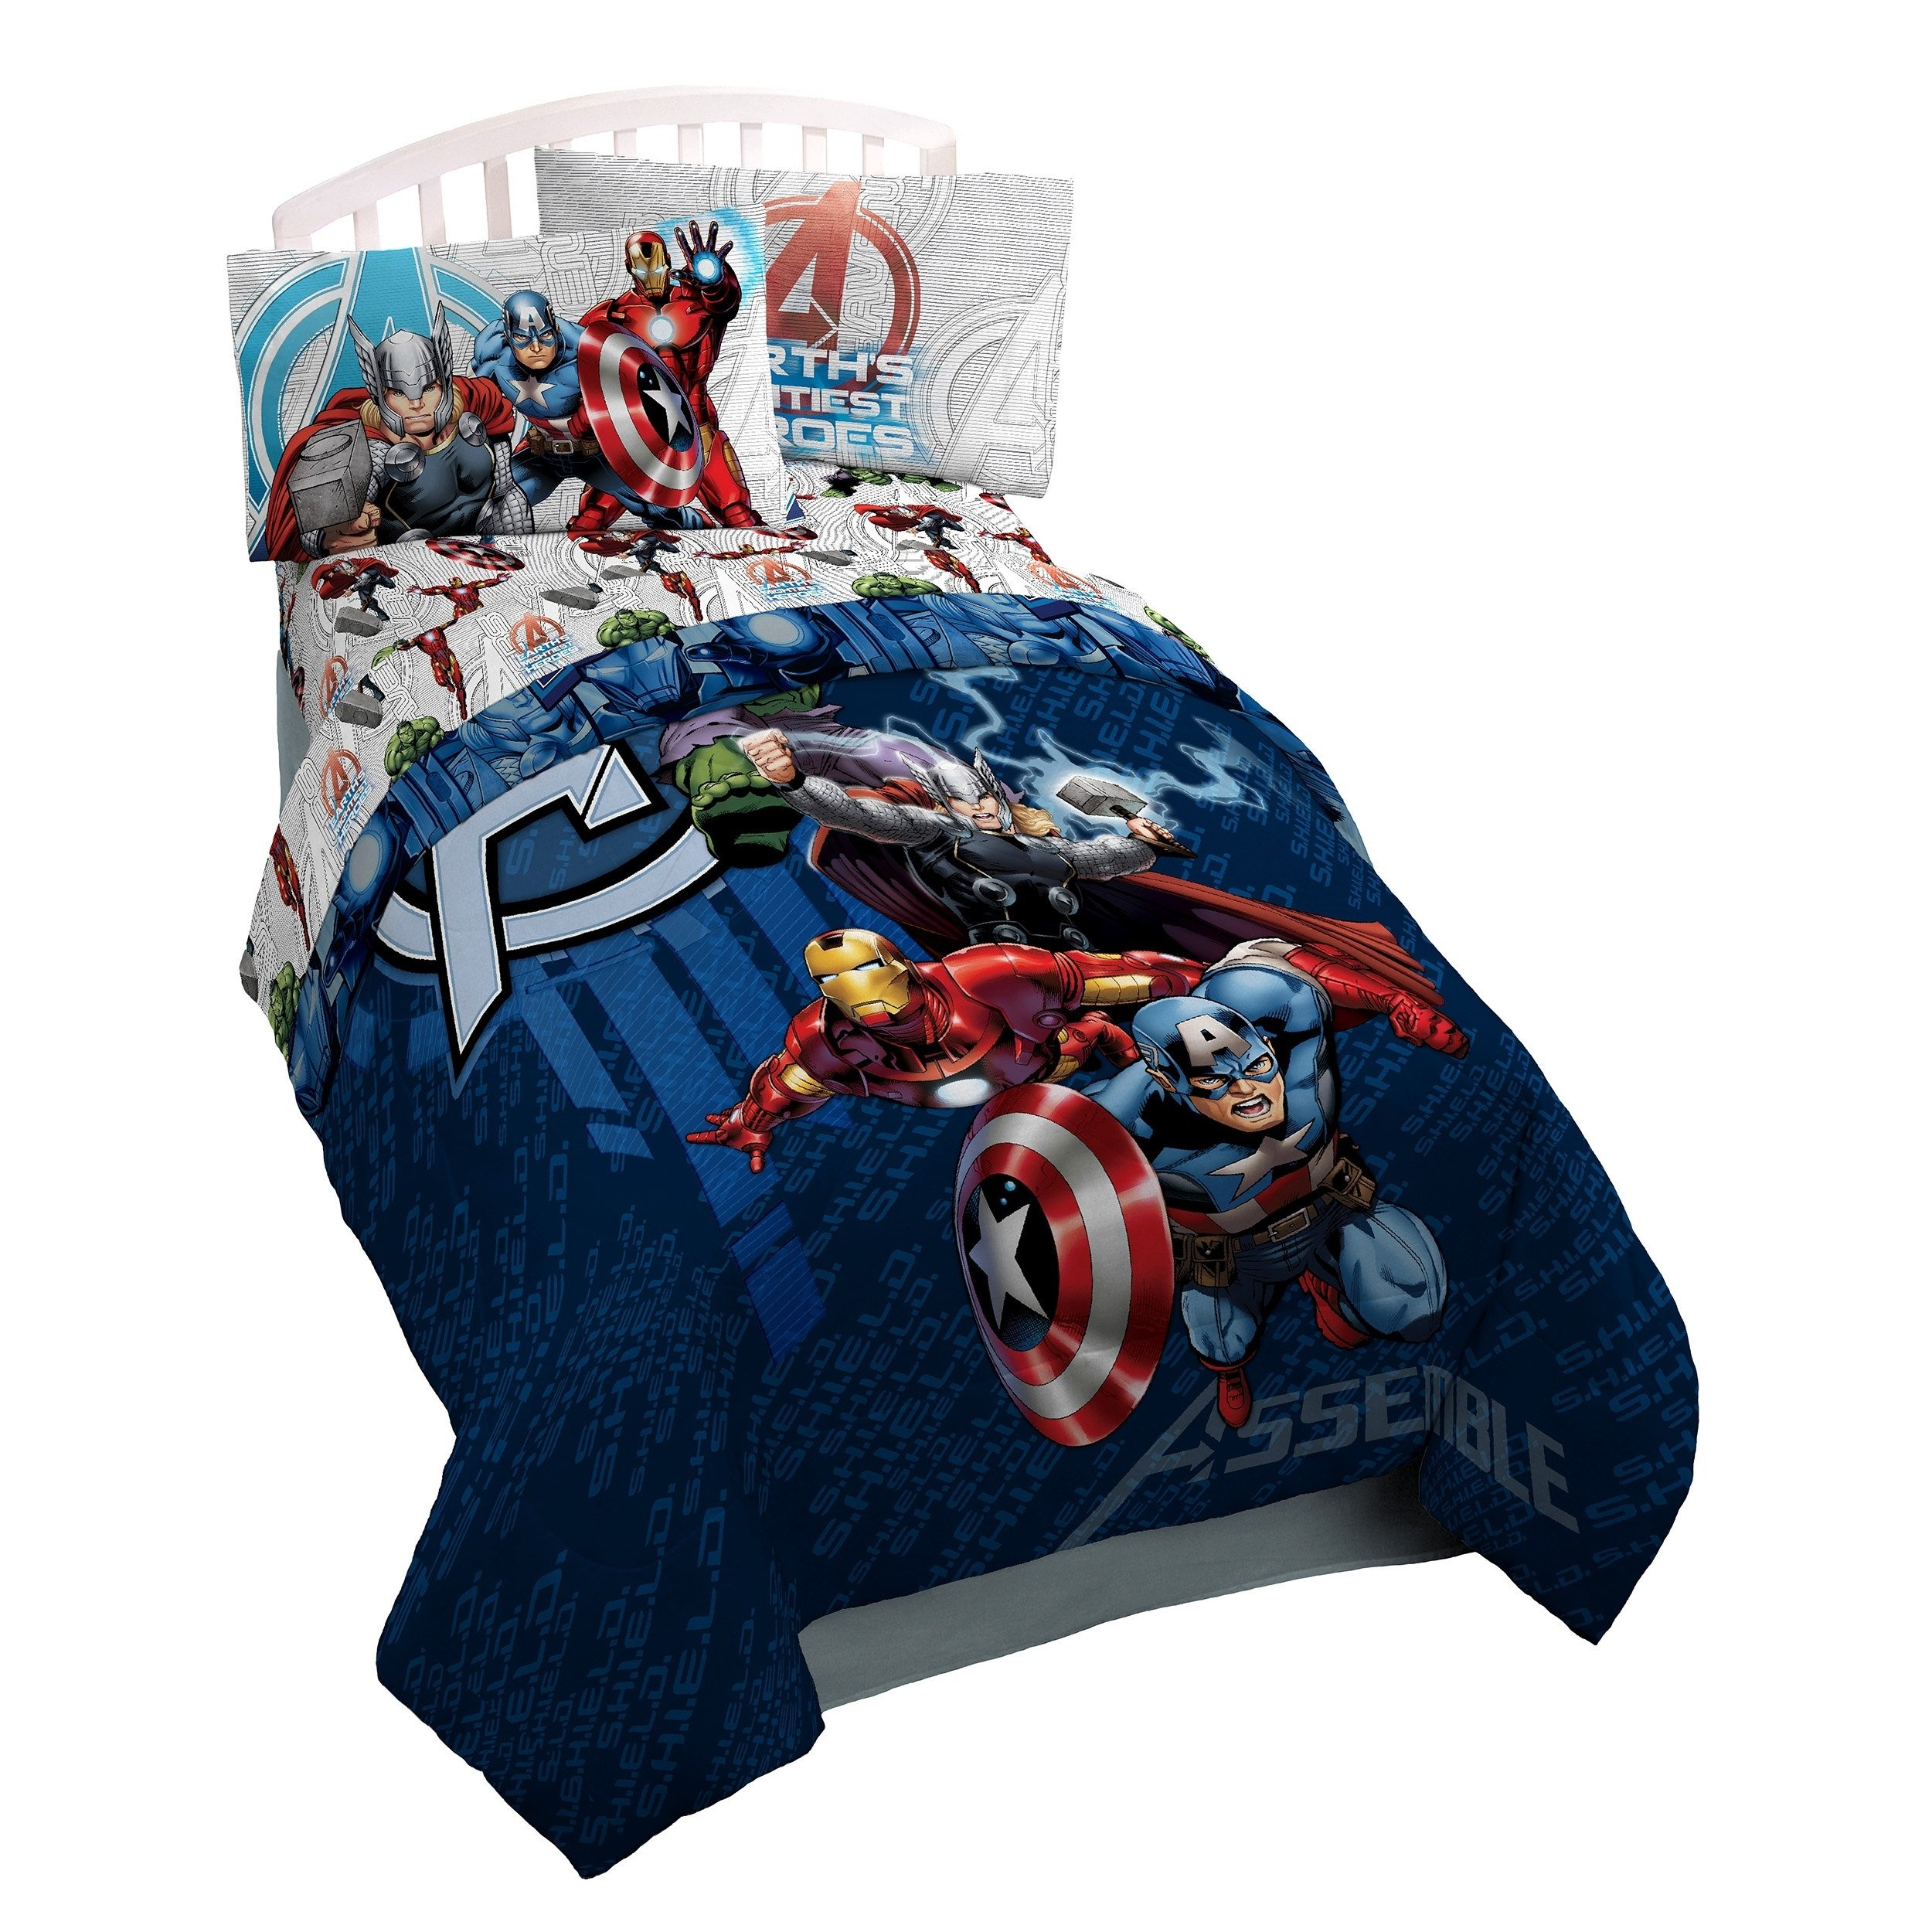 LO 1 Piece Blue Kids Marvel Avengers Themed Comforter Full Sized, Fun Action Packed Super Hero Power Bedding, Playful Characters The Hulk Green Captain America Ironman Red Theme Pattern, Polyester by LO